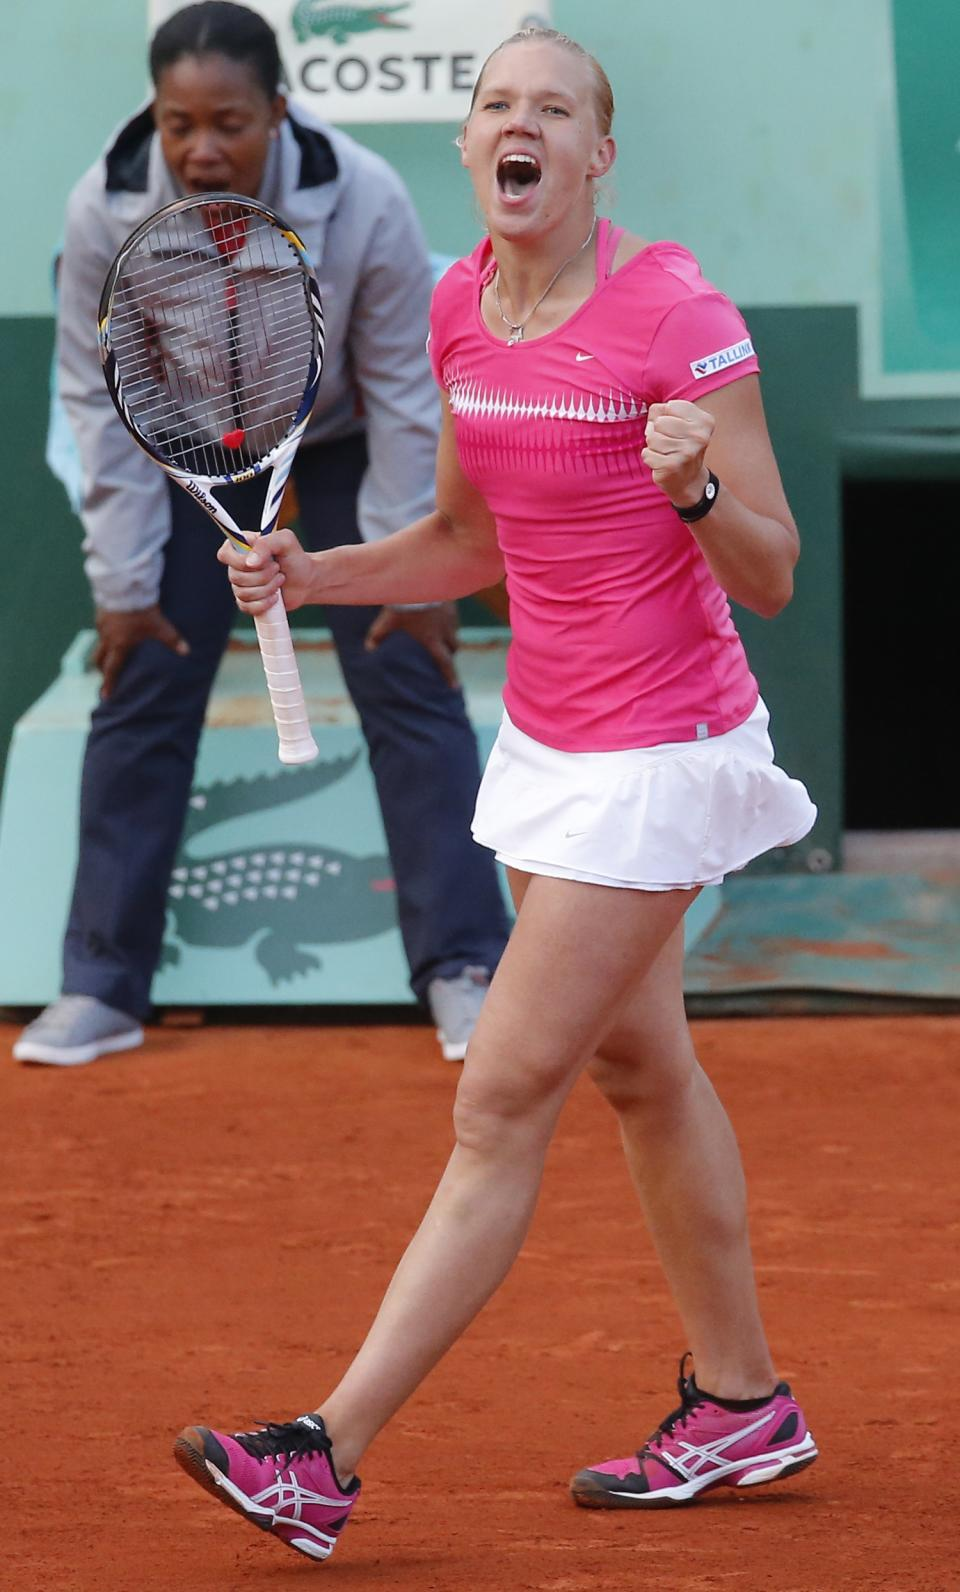 Estonia's Kaia Kanepi reacts as she defats The Netherlands' Arantxa Rus during their fourth round match in the French Open tennis tournament at the Roland Garros stadium in Paris, Monday, June 4, 2012. (AP Photo/Michel Euler)